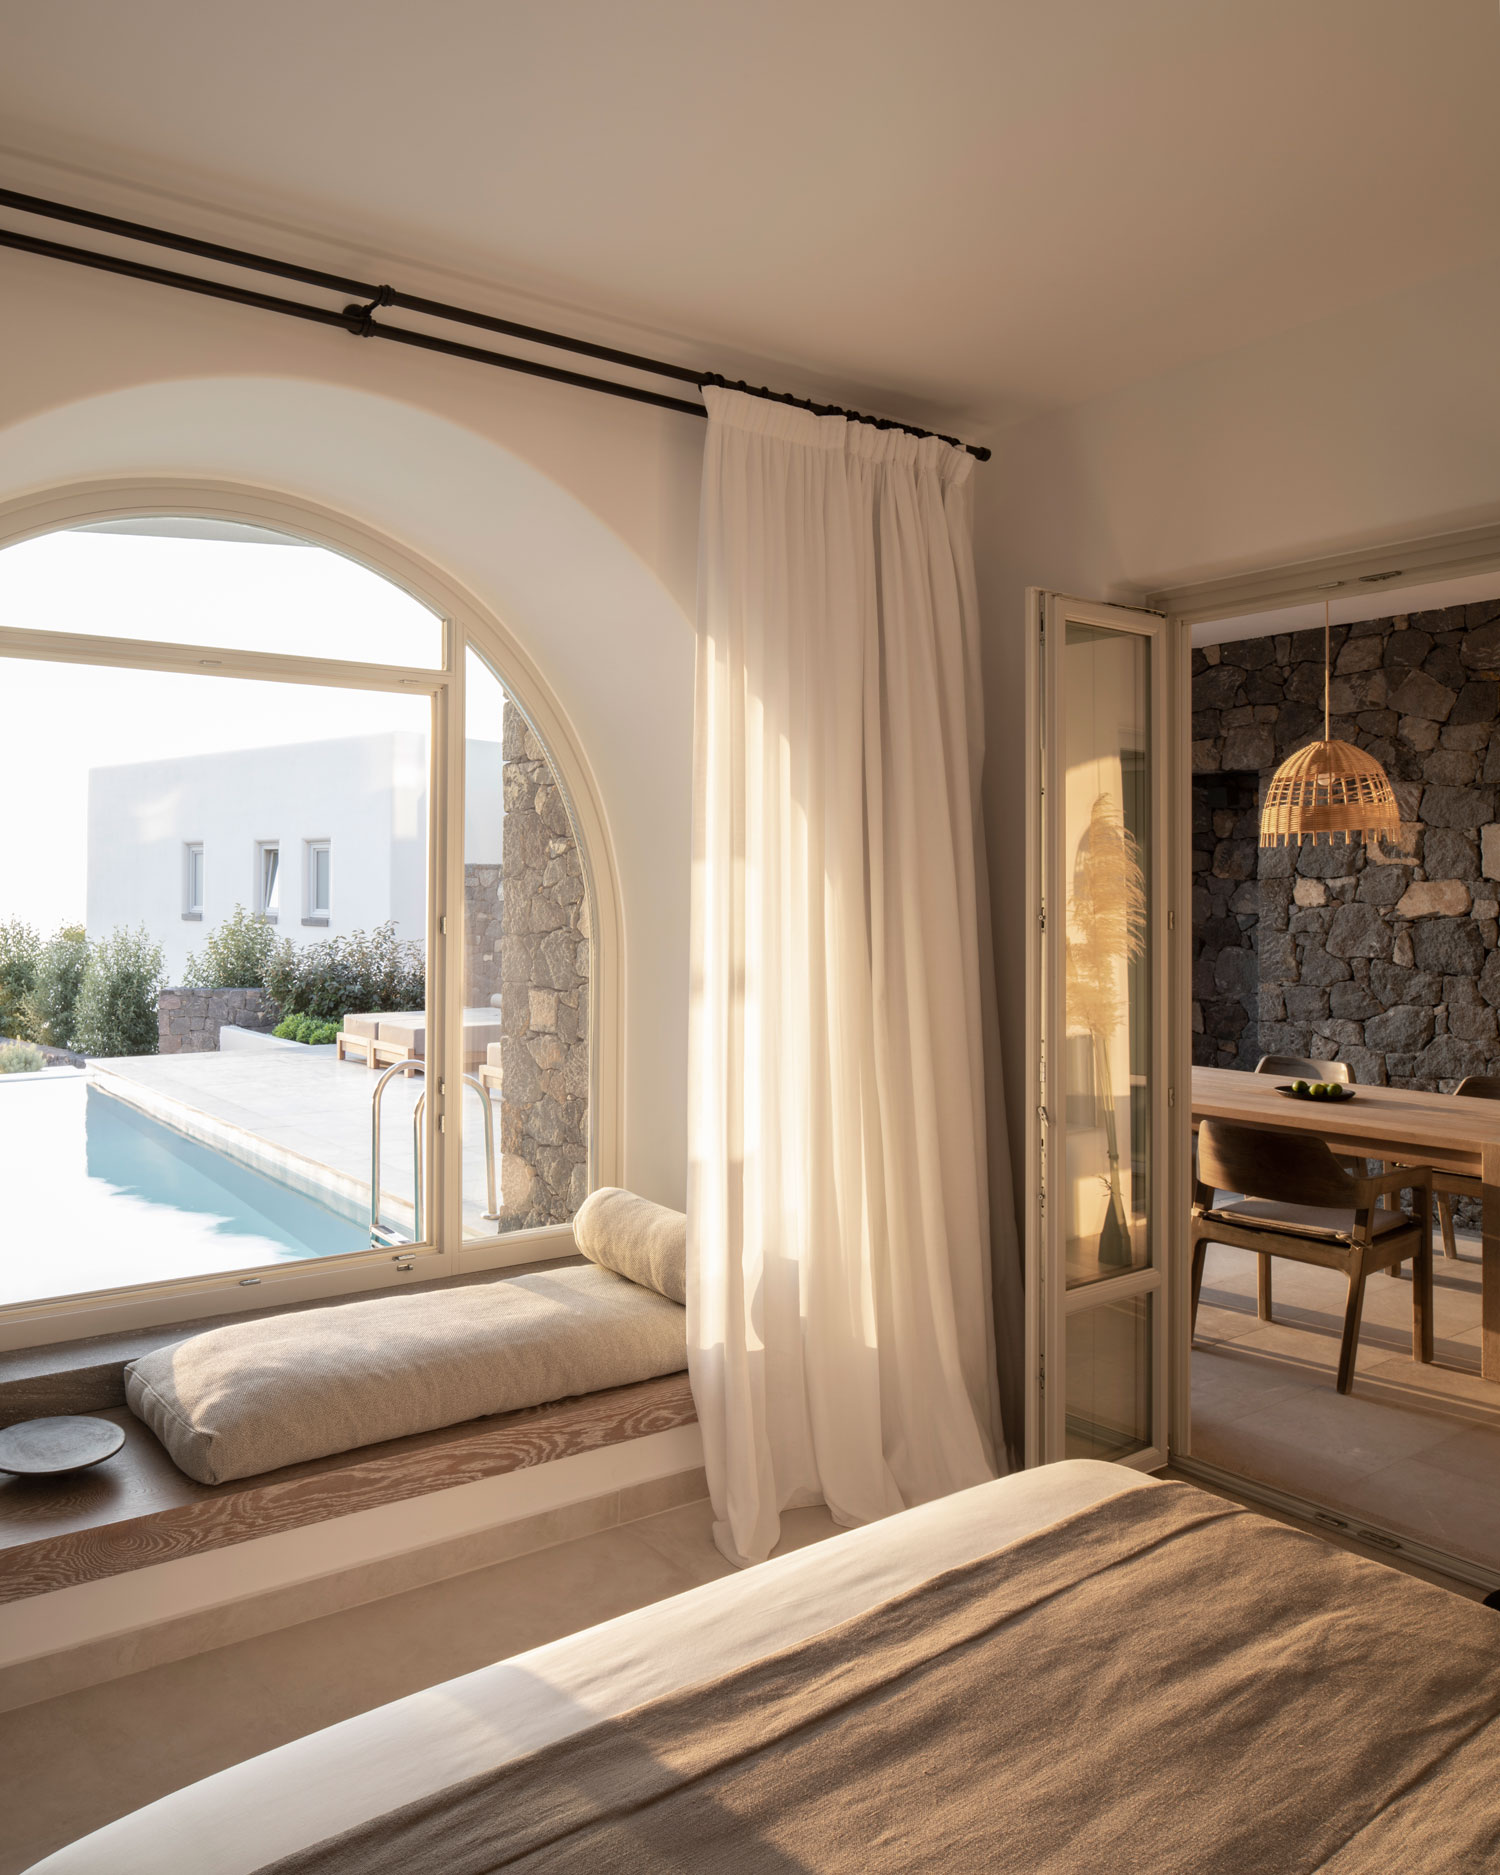 Oia Epitome Hotel Offers Infinite Views To Cycladic Landscape -WWW.AUTHENTICINTERIOR.COM design studio & blog Photography Stale Eriksen